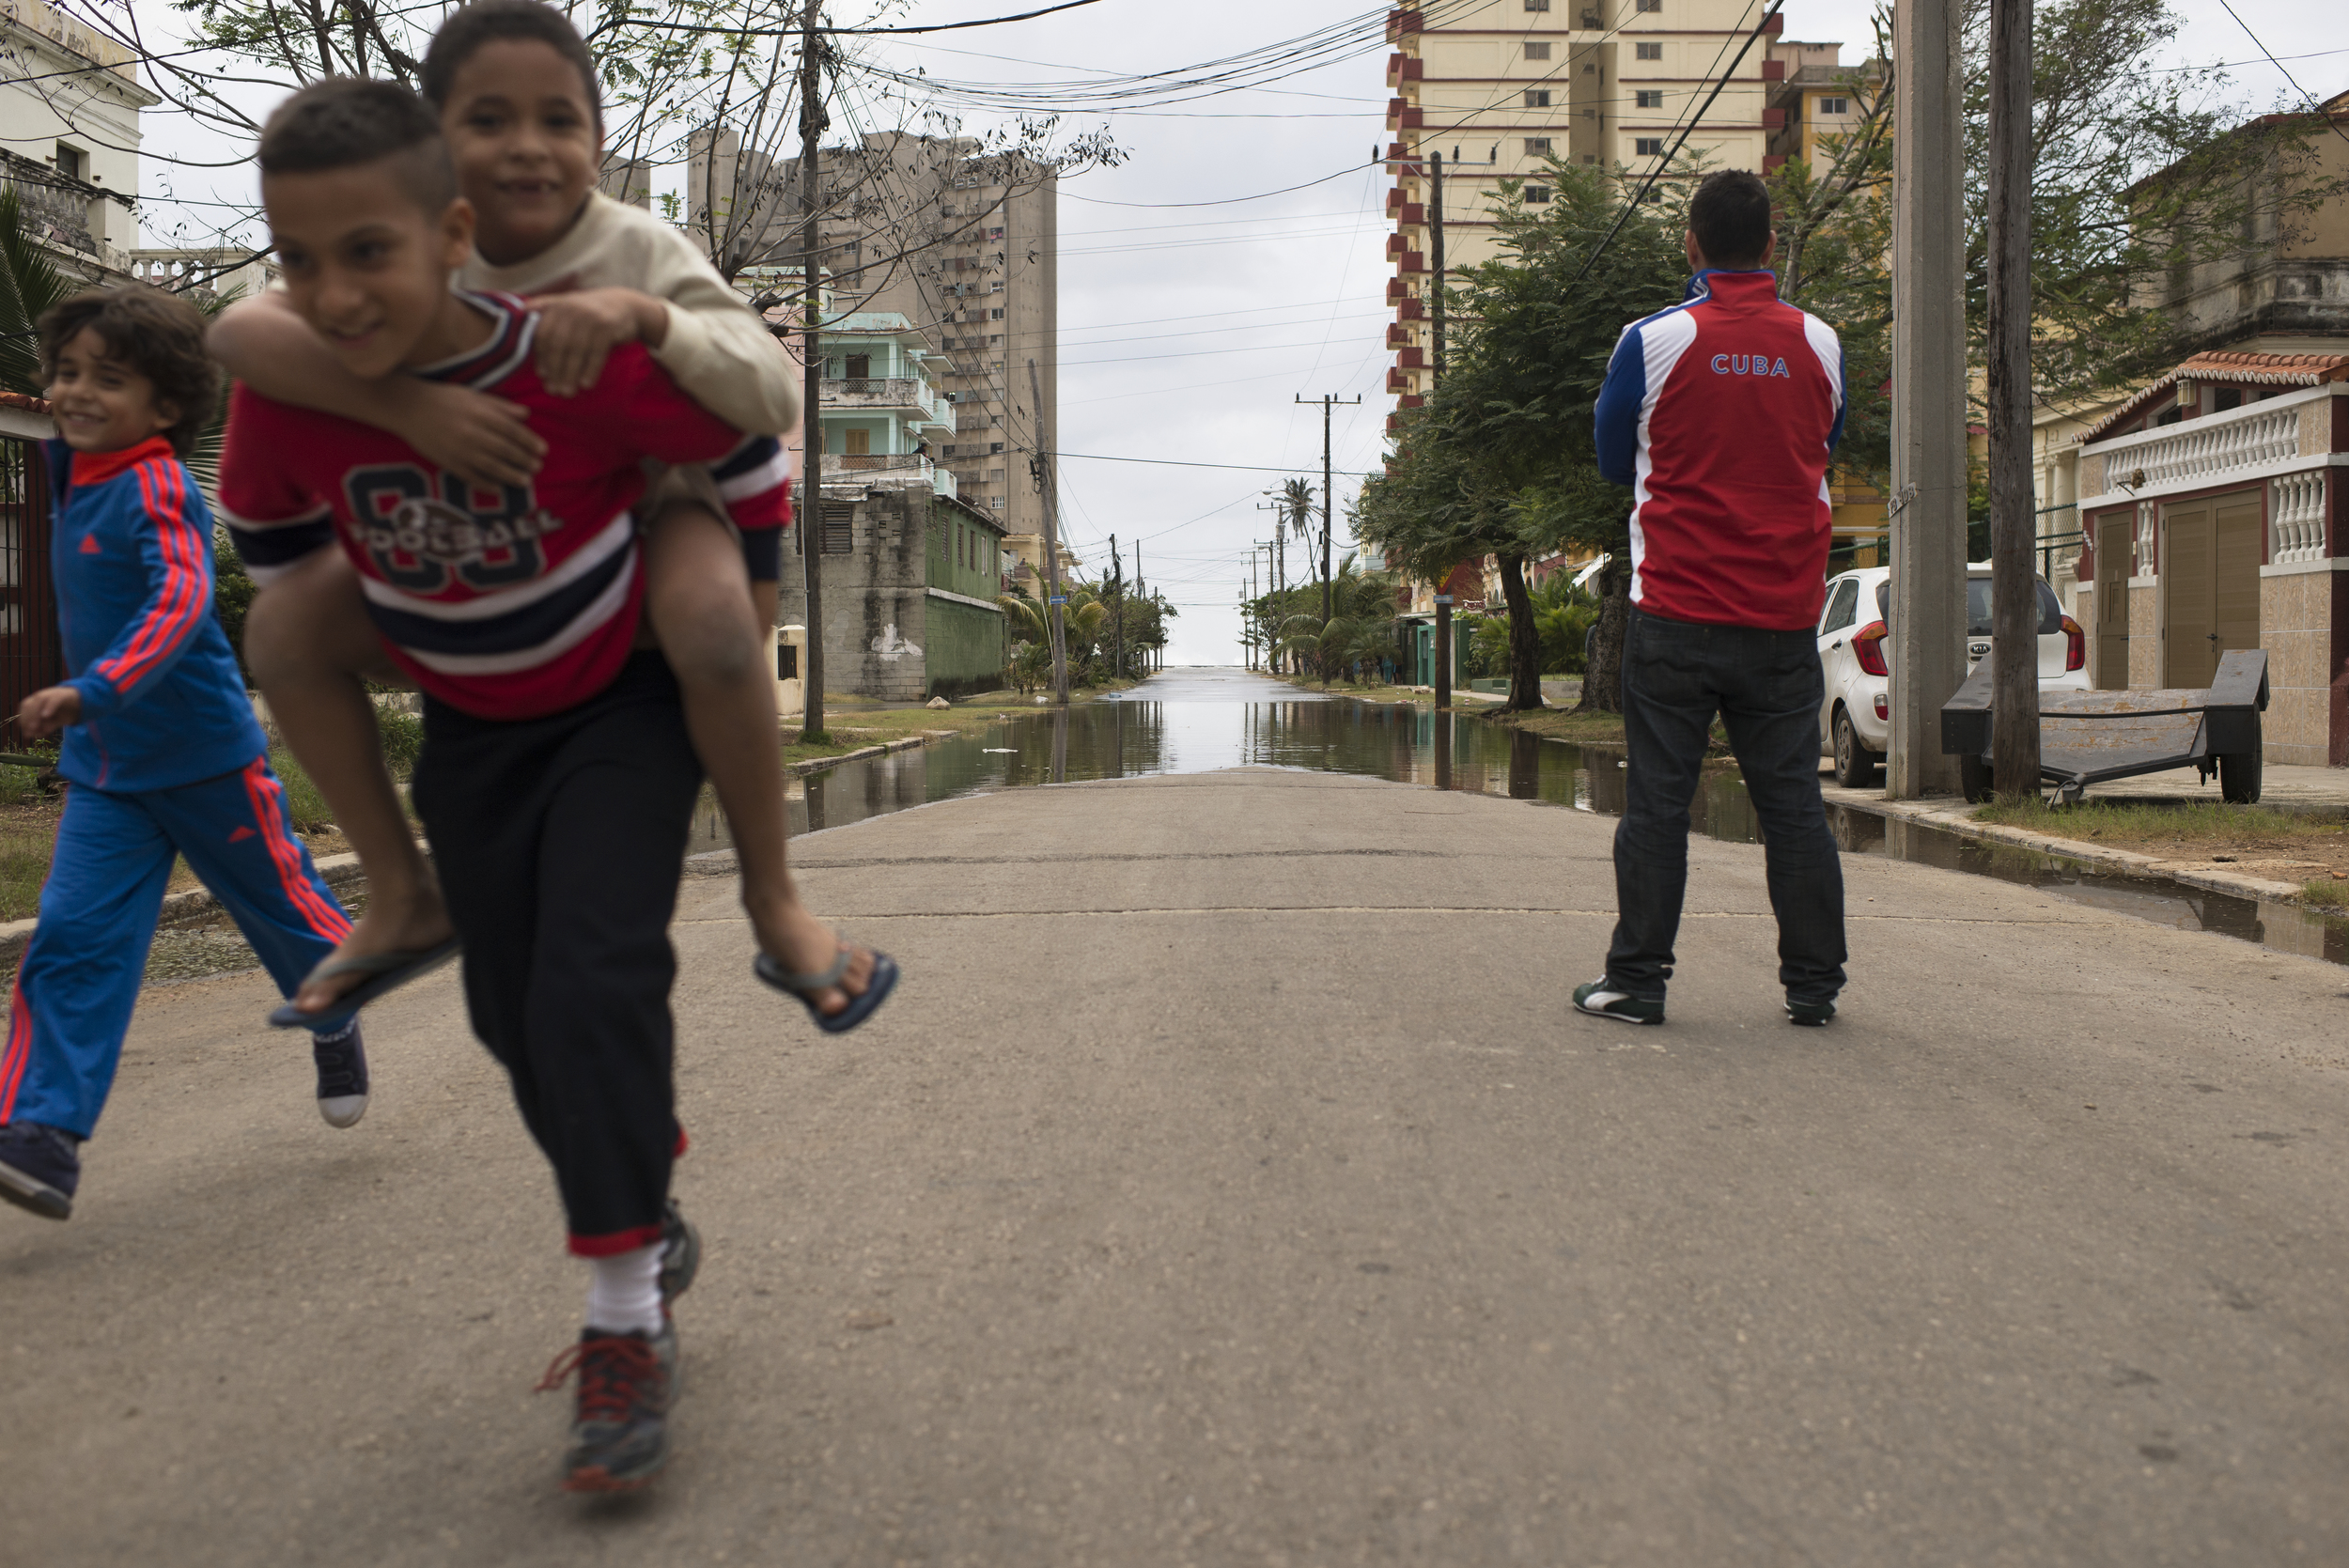 Children play as a man looks at the flood waters in Havana, Cuba on Jan. 23, 2016.